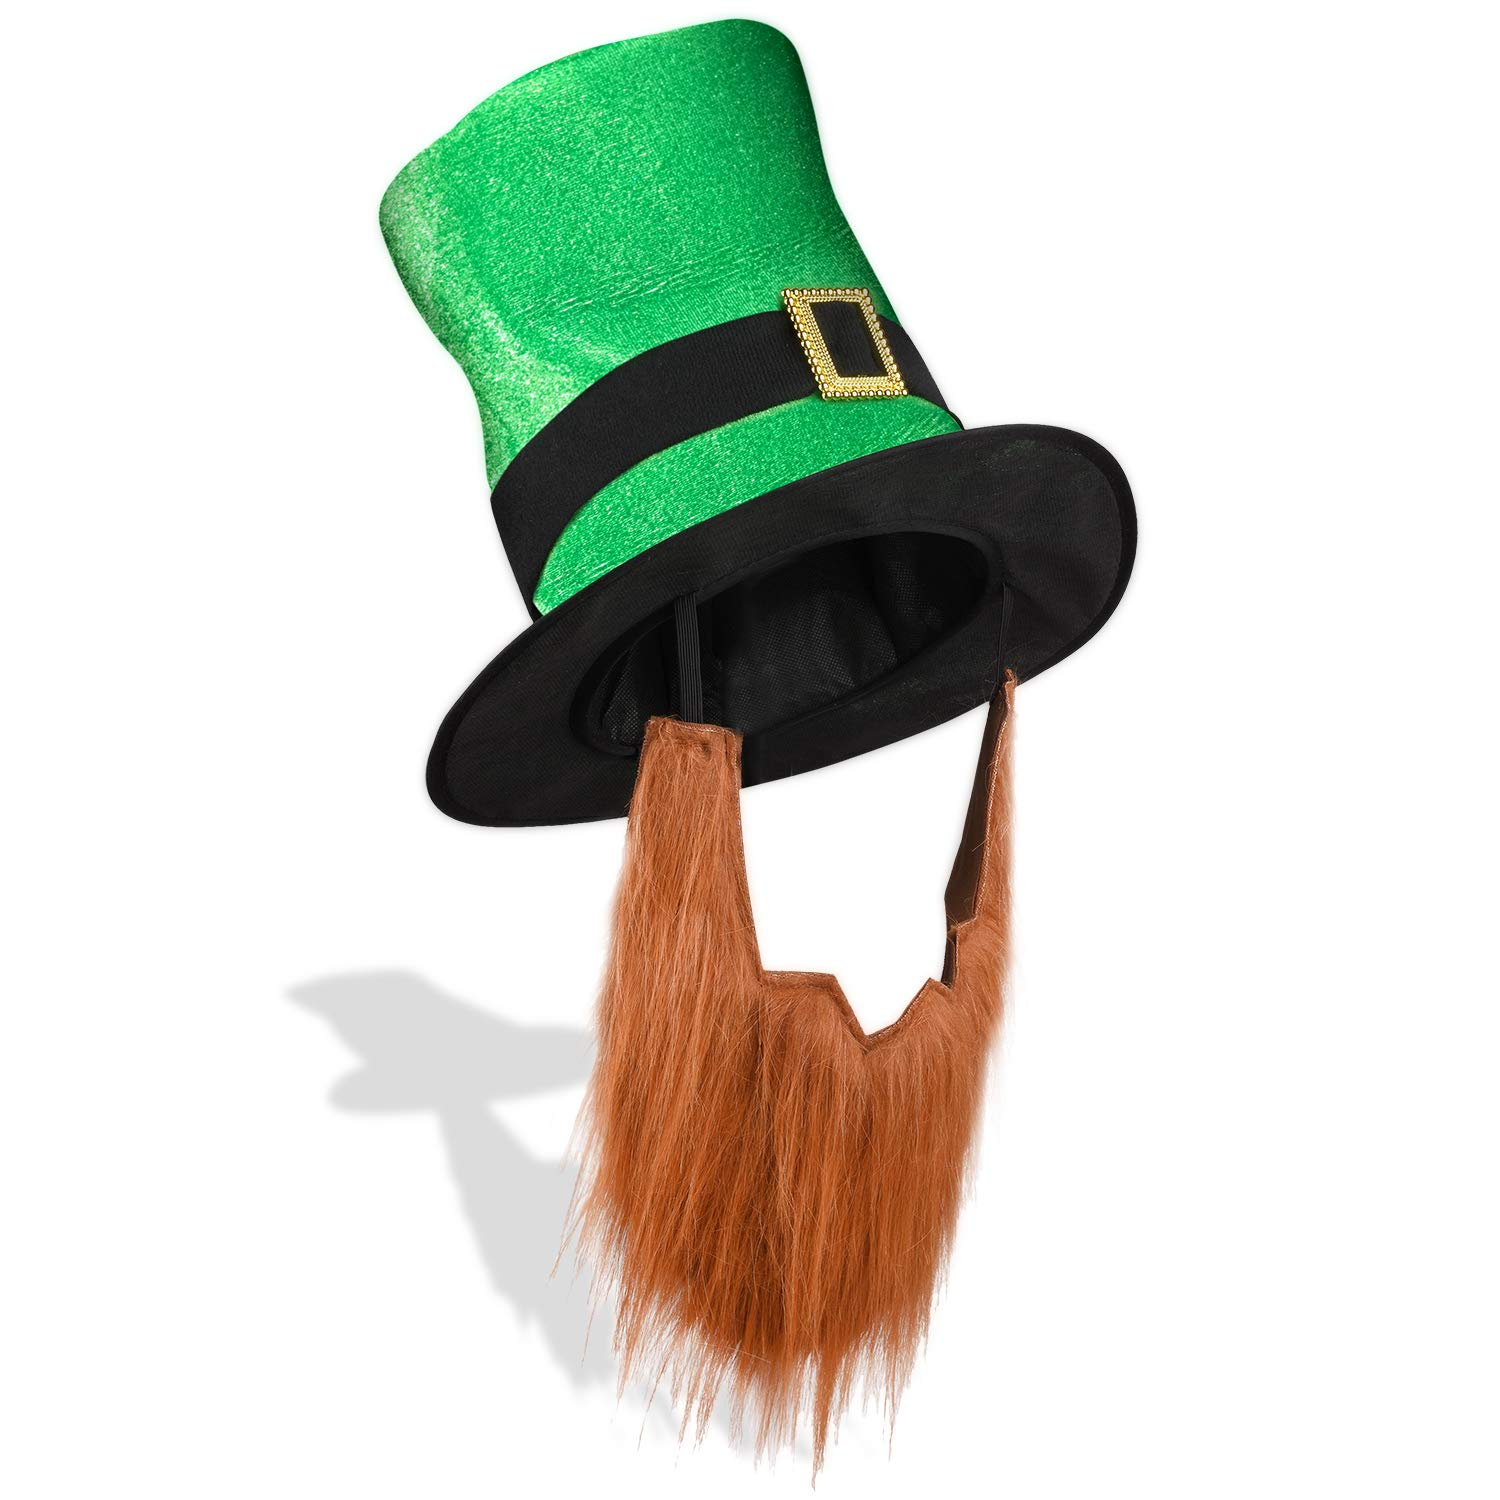 St. Patrick s Day Leprechaun Top Hat with Beard-Men s Women s Kids ... 8df6b208846c